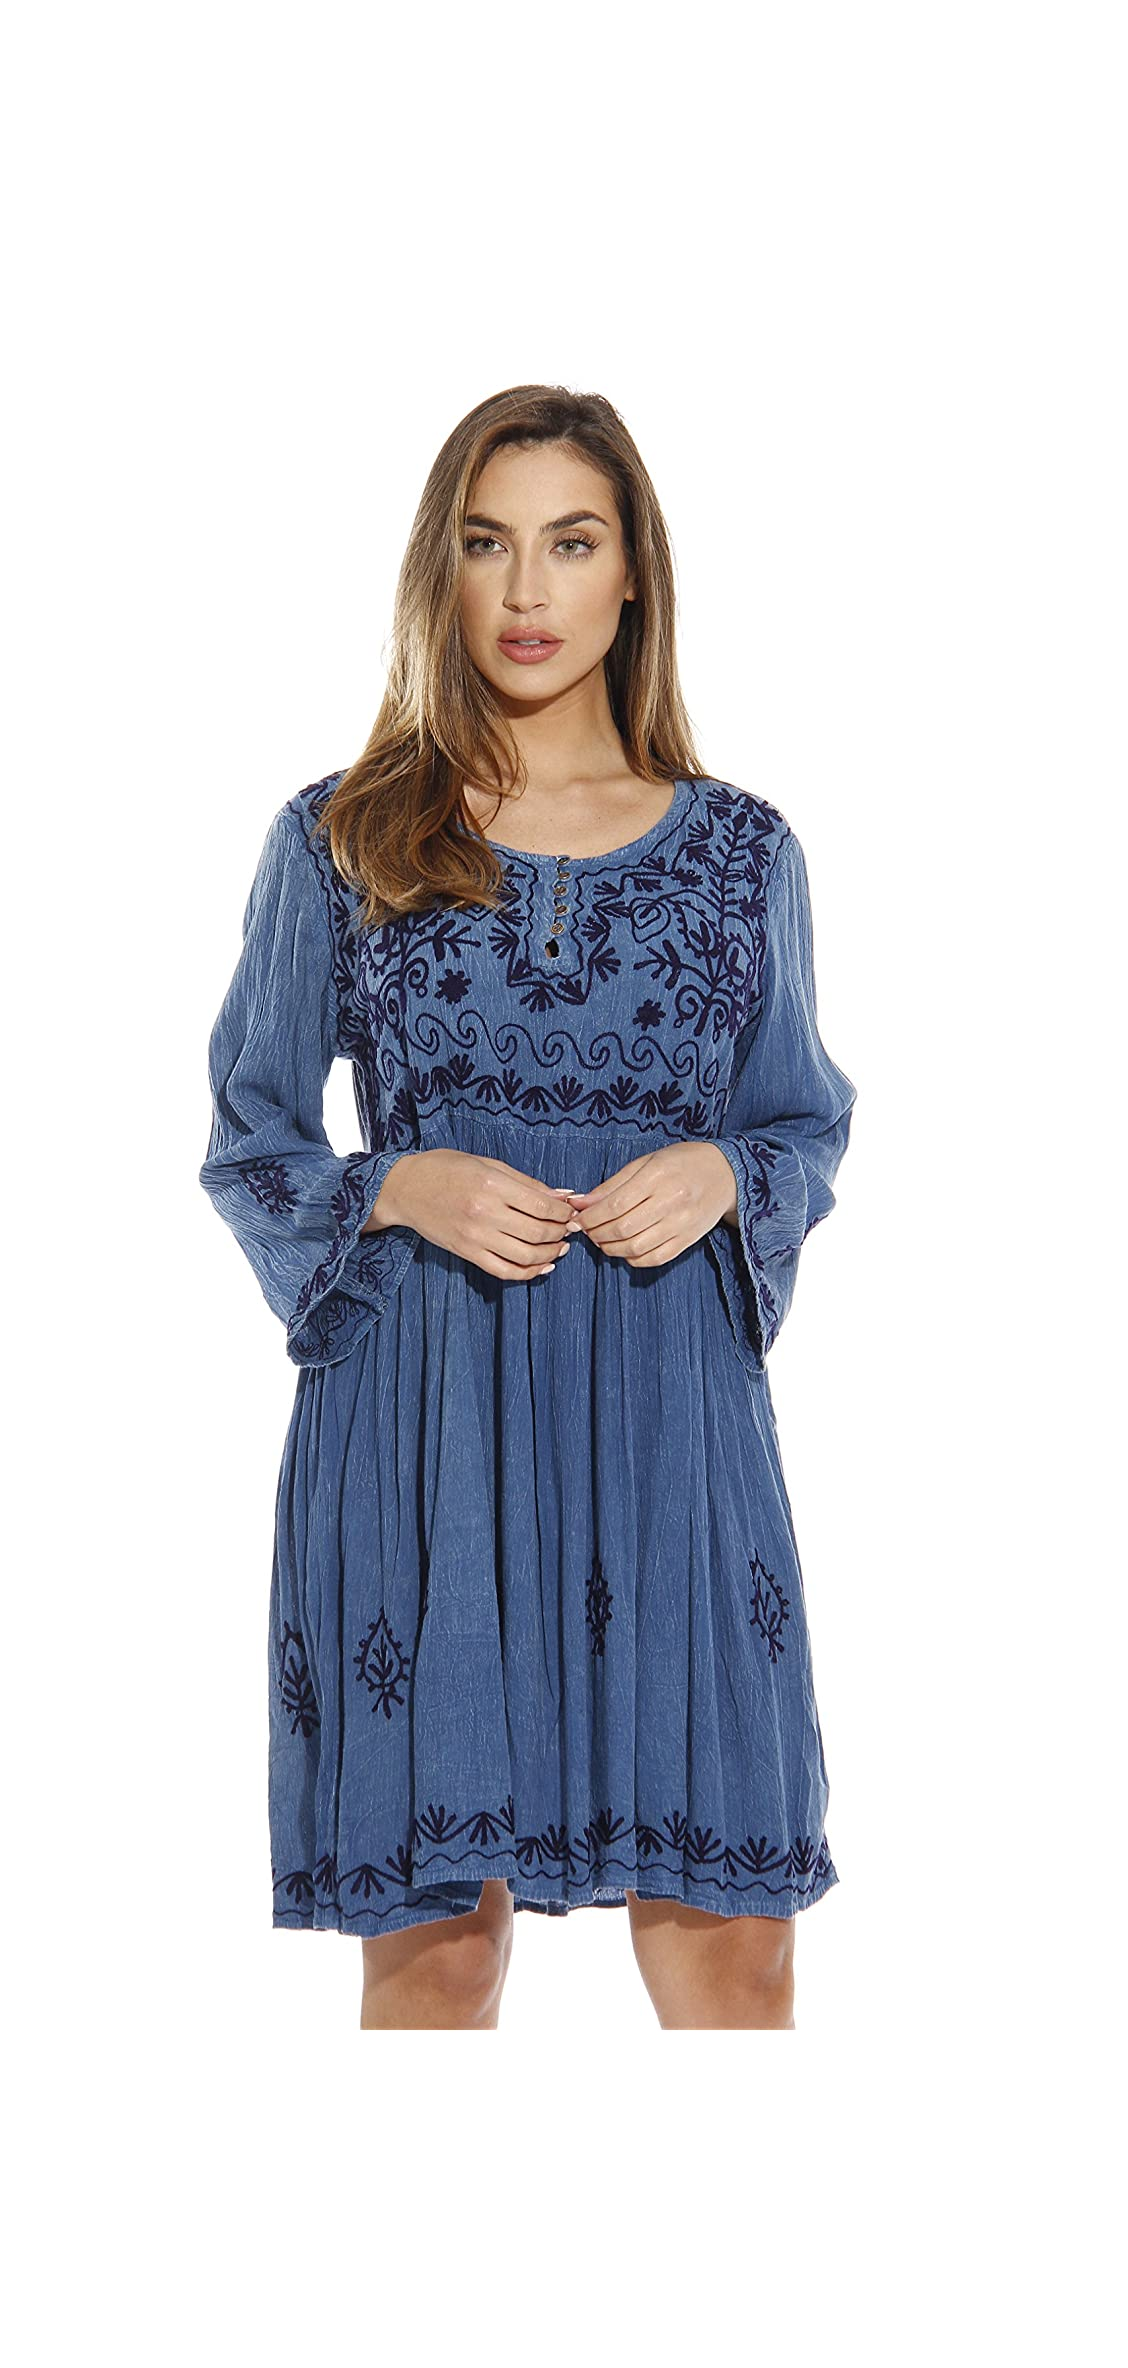 Tunic Dresses For Women